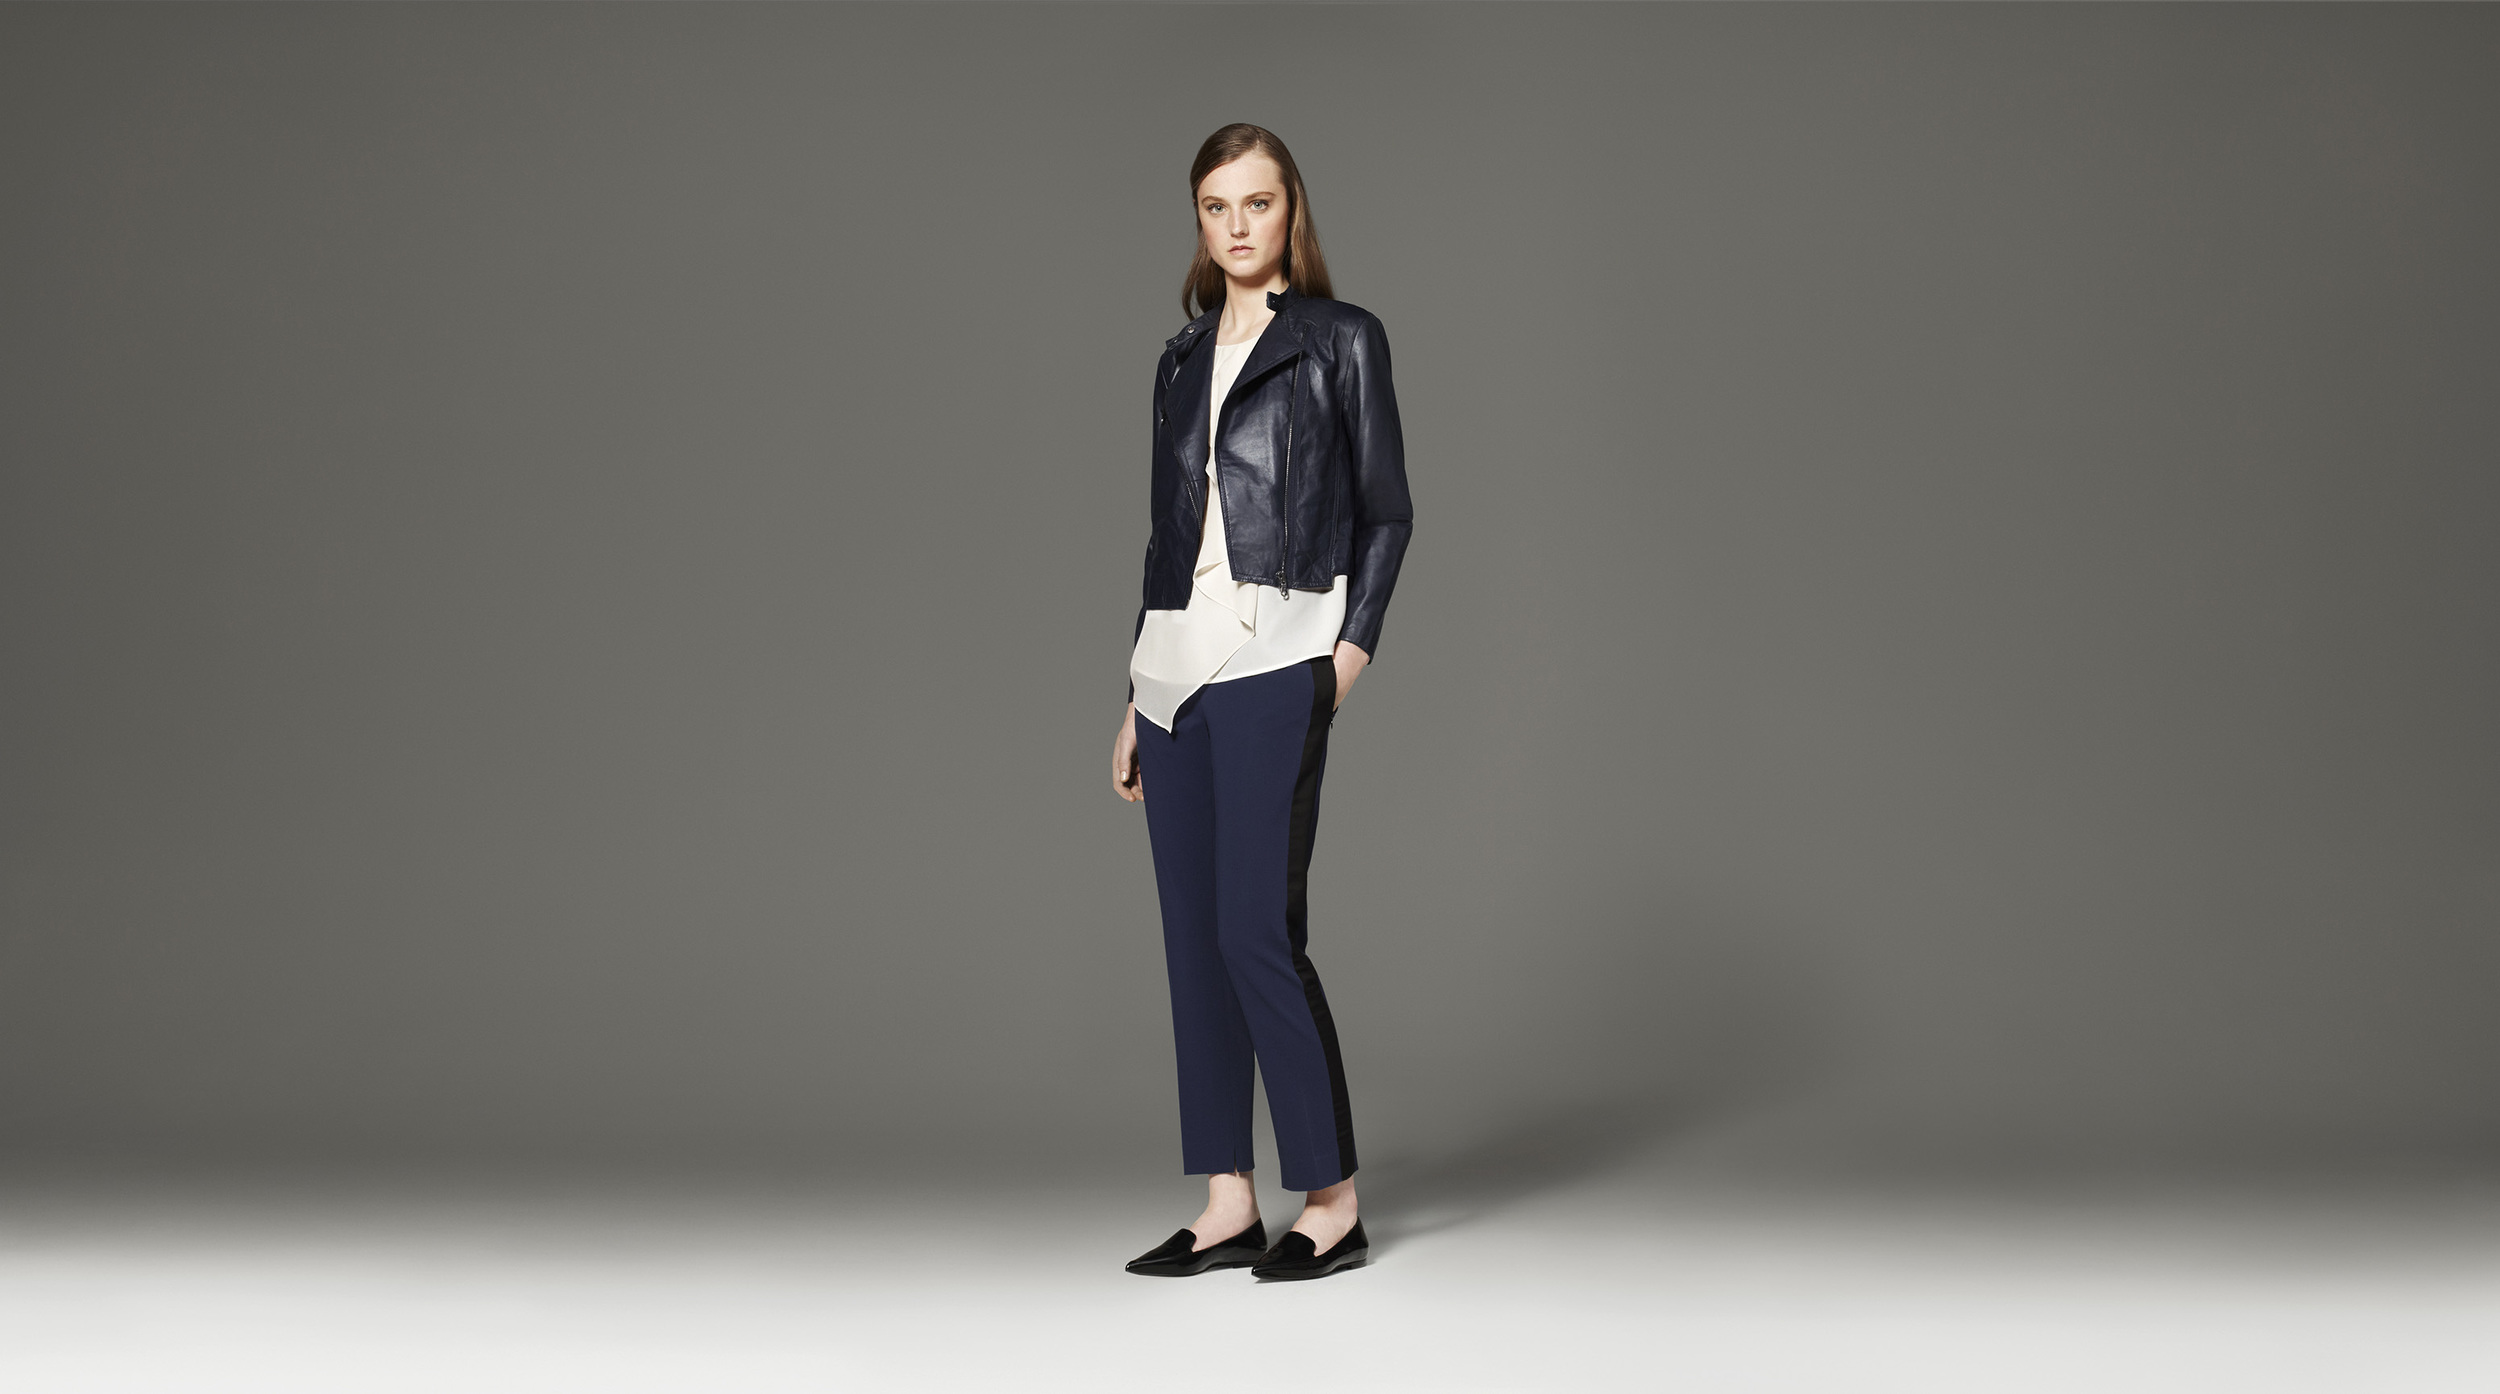 Perfect layers for fall!  Ruffle Tank in White, $26.99, paired with Tuxedo Pant, $39.99, and Leather Jacket in Navy, $249.99